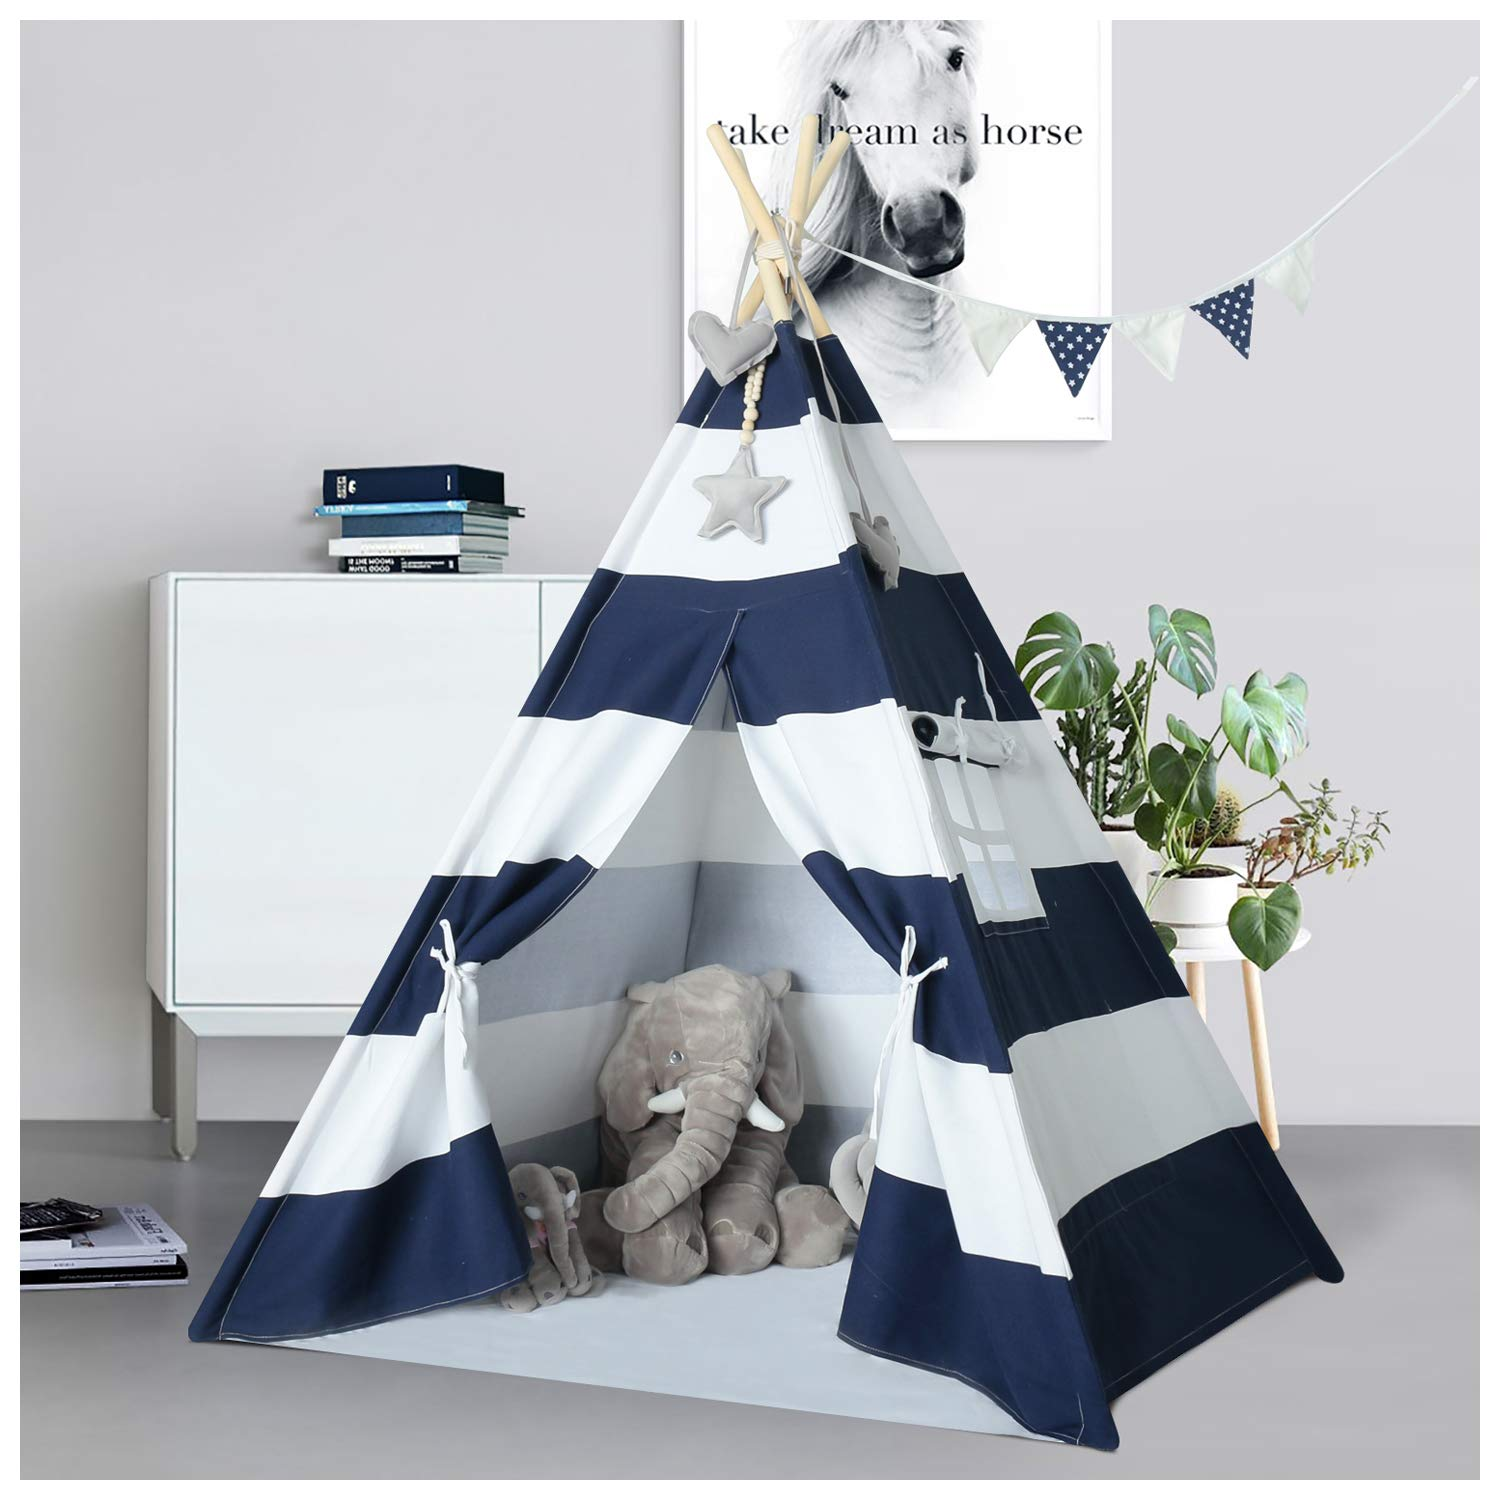 UKadou-Kids-Teepee-Tent-for-Boys Navy and White Stripe Teepee Tent Indian Canvas Tents for Toddlers Indoor Outdoor Playhouse Play Tent for Kids